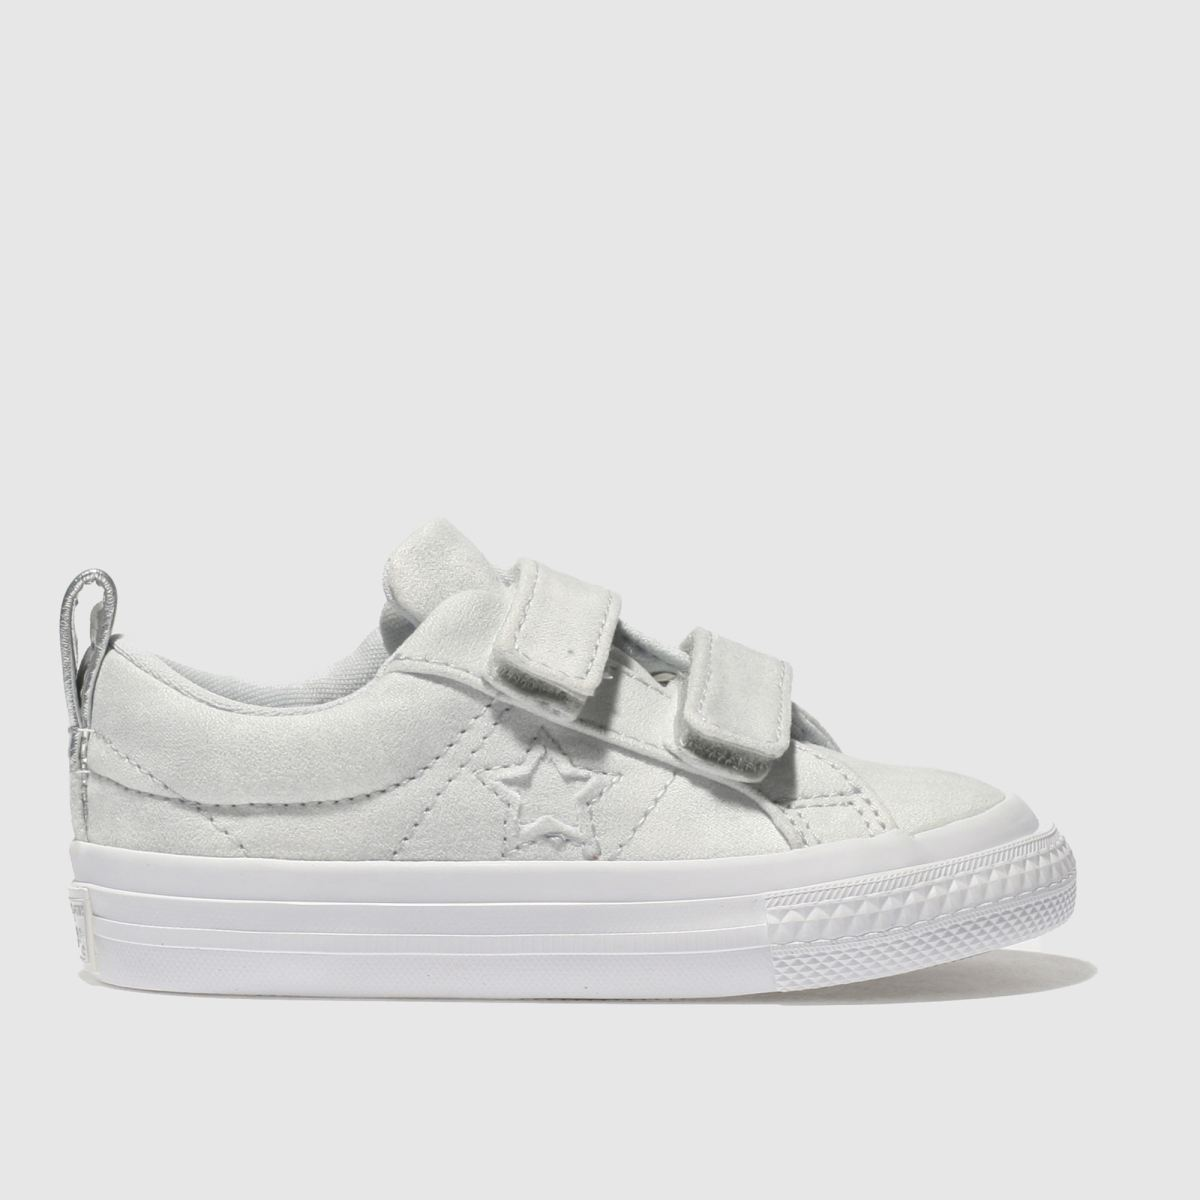 Converse Light Blue One Star Ox 2v Girls Toddler Trainers